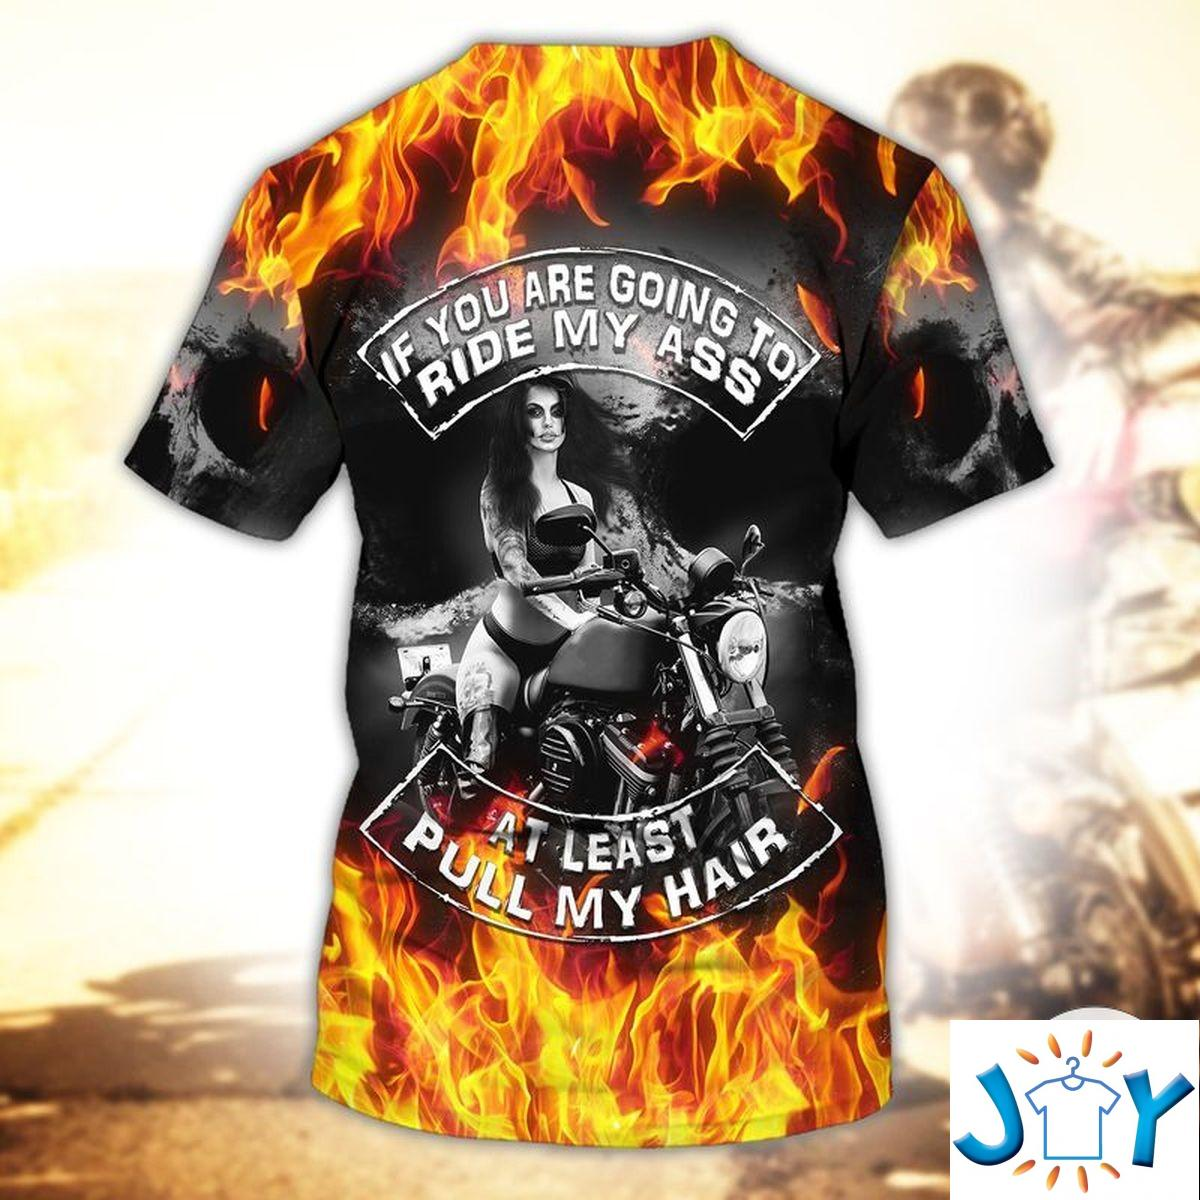 Lady Biker If You Are Going Ride My Ass At Least Pull My Hair 3D T-shirt, Hoodie